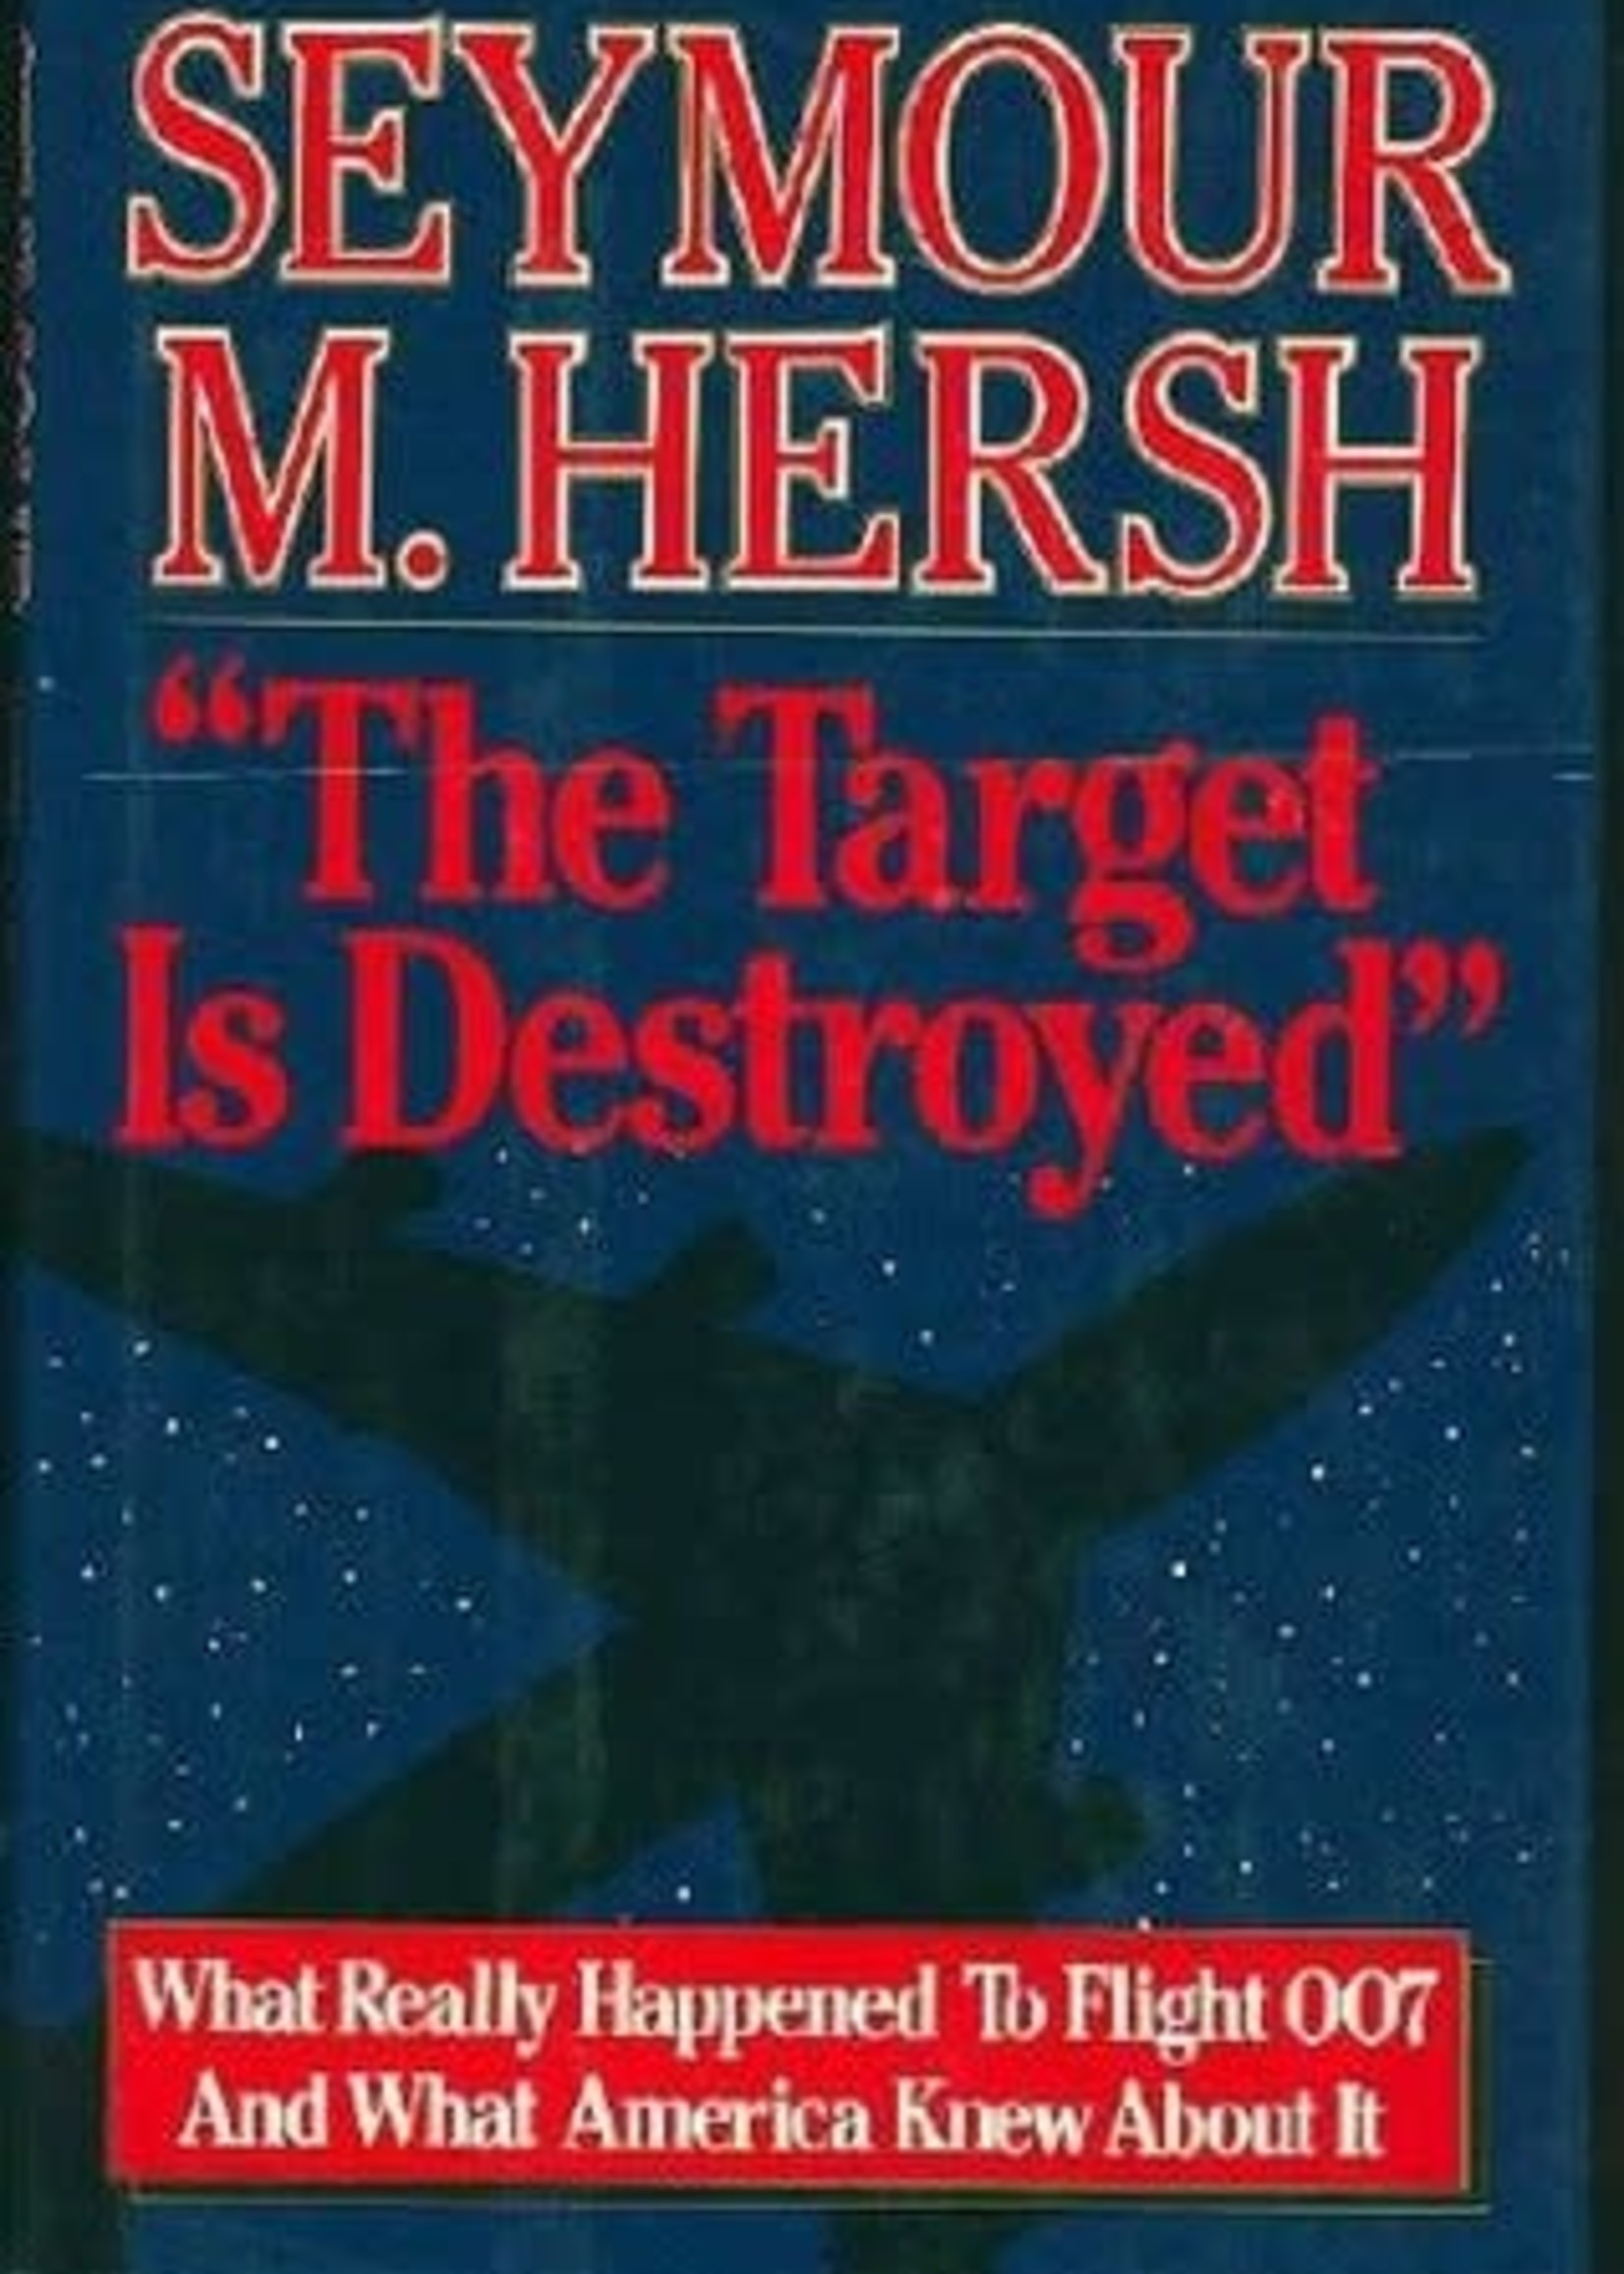 USED - The Target Is Destroyed by Seymour M. Hersh